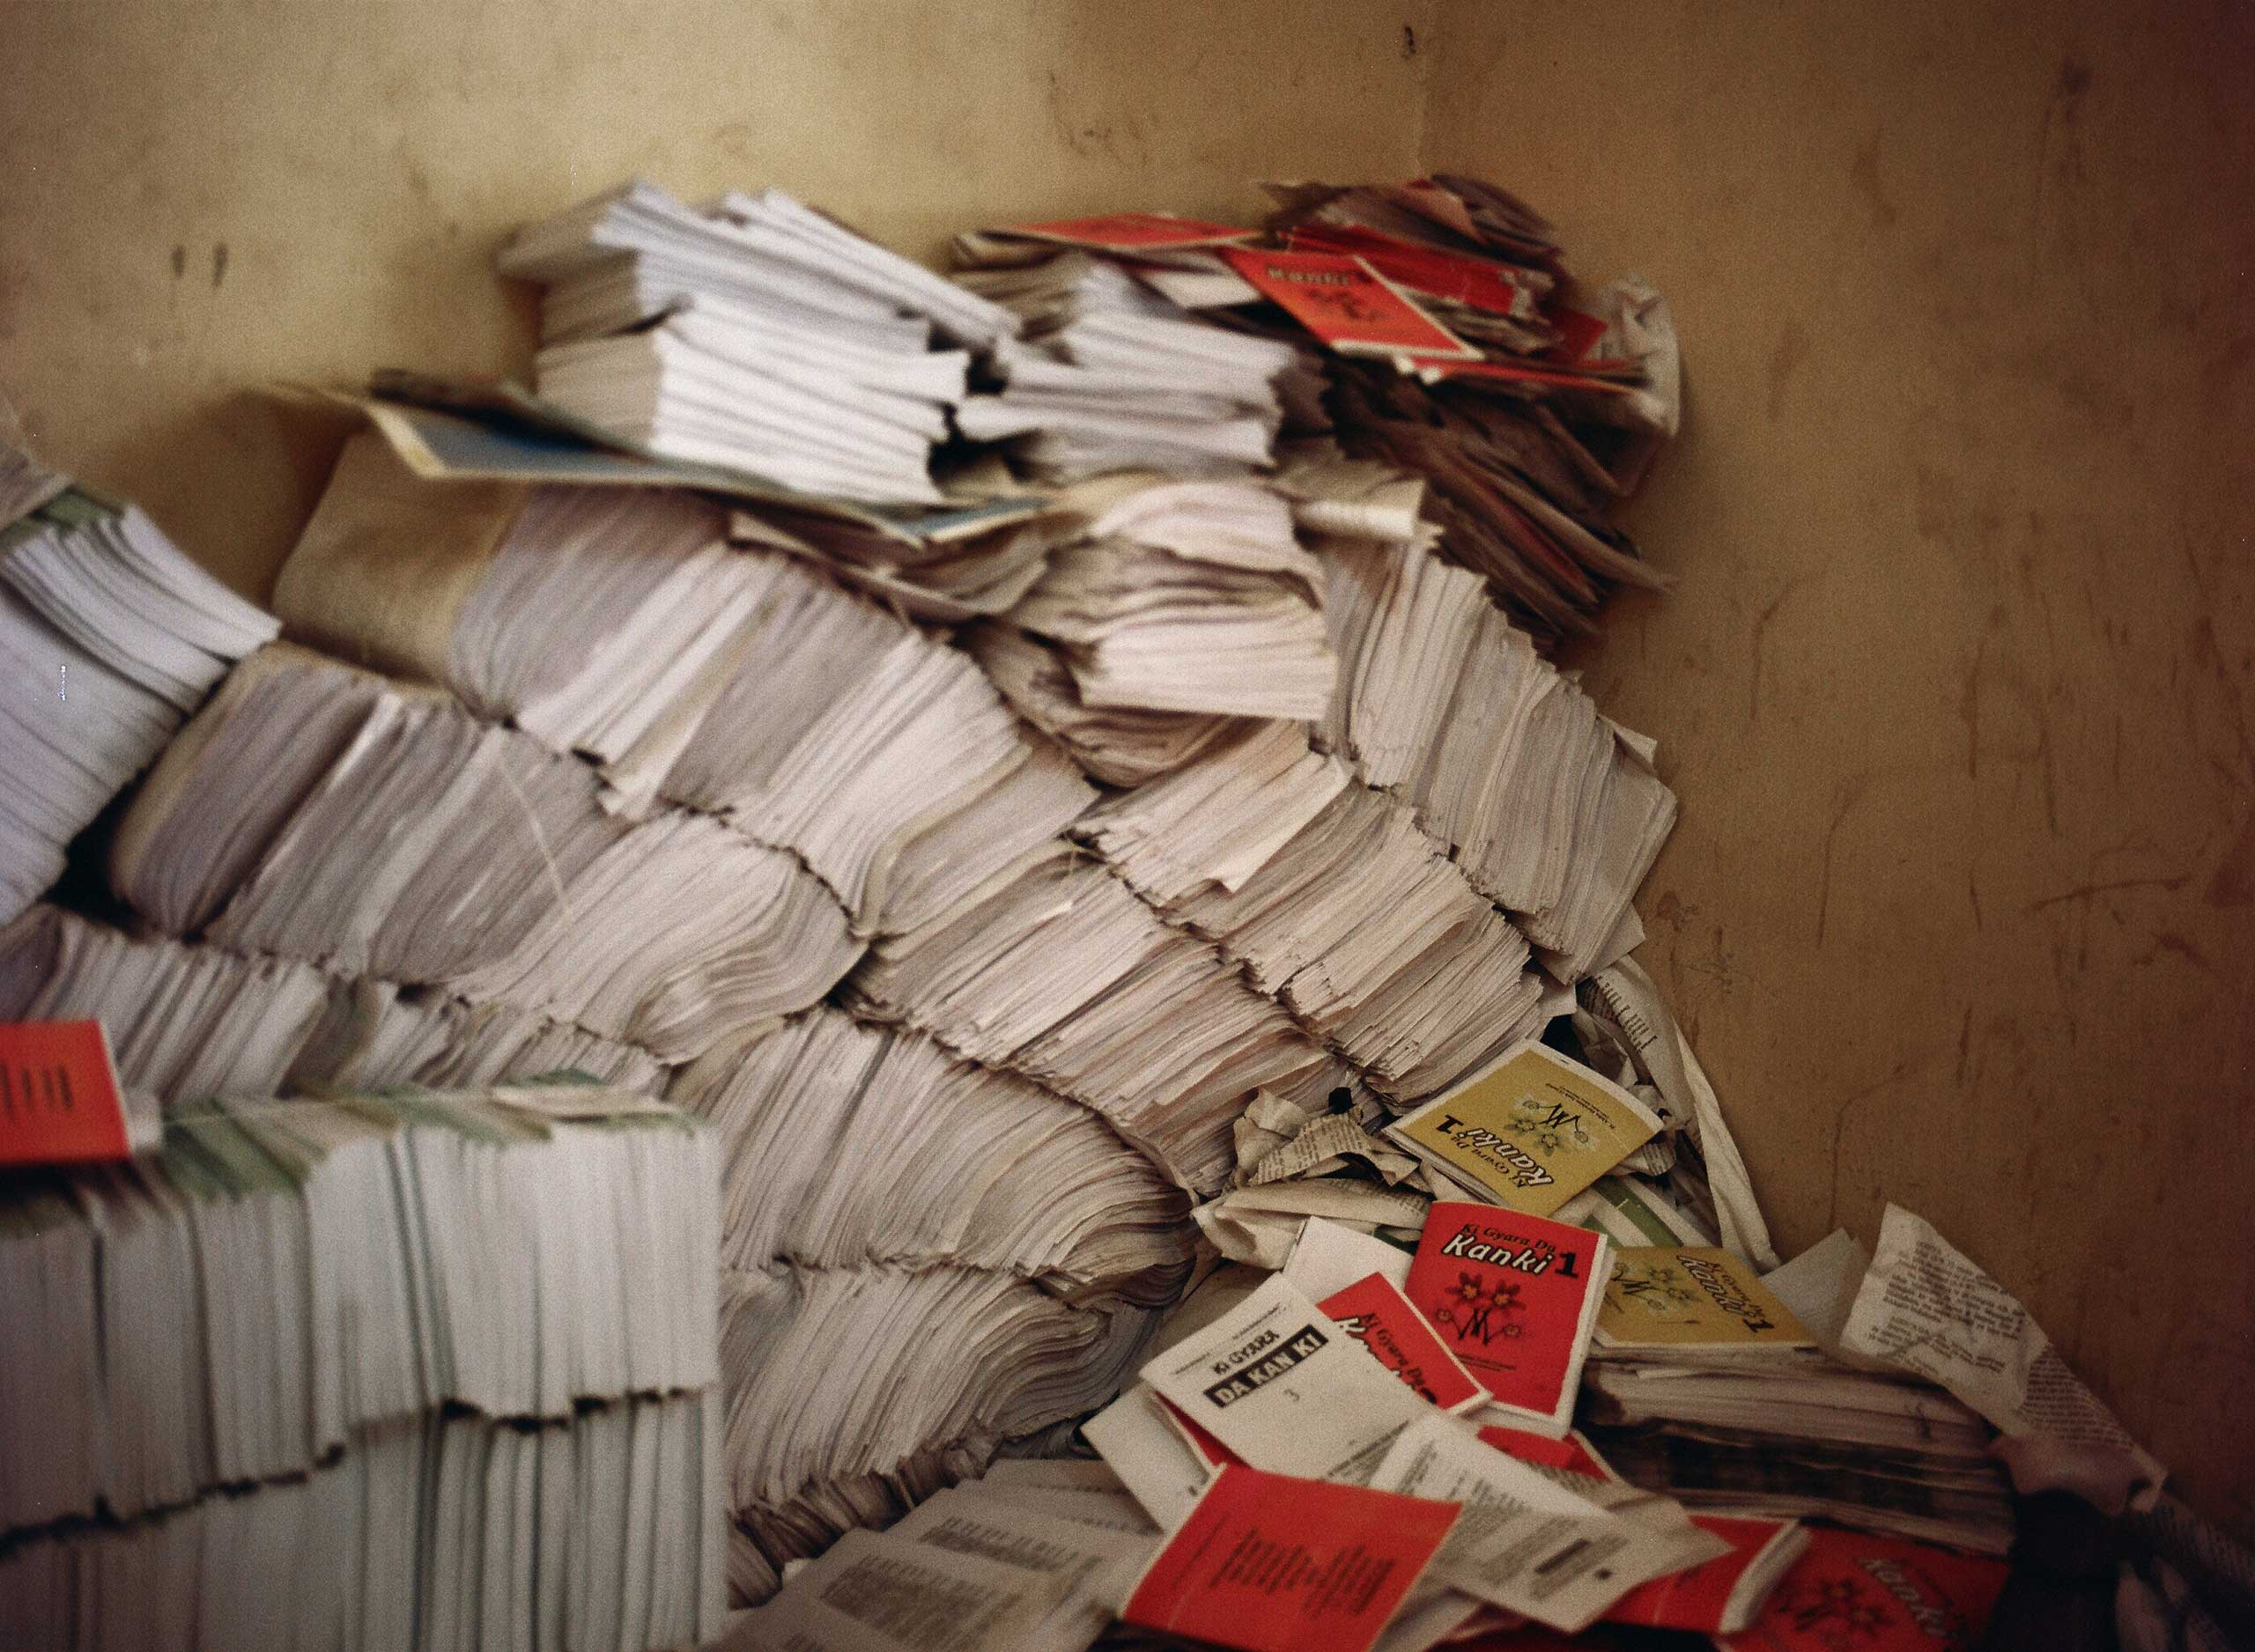 Piles of books are stacked up before they are taken to the market to be sold, Kano, Northern Nigeria. April 8, 2013.